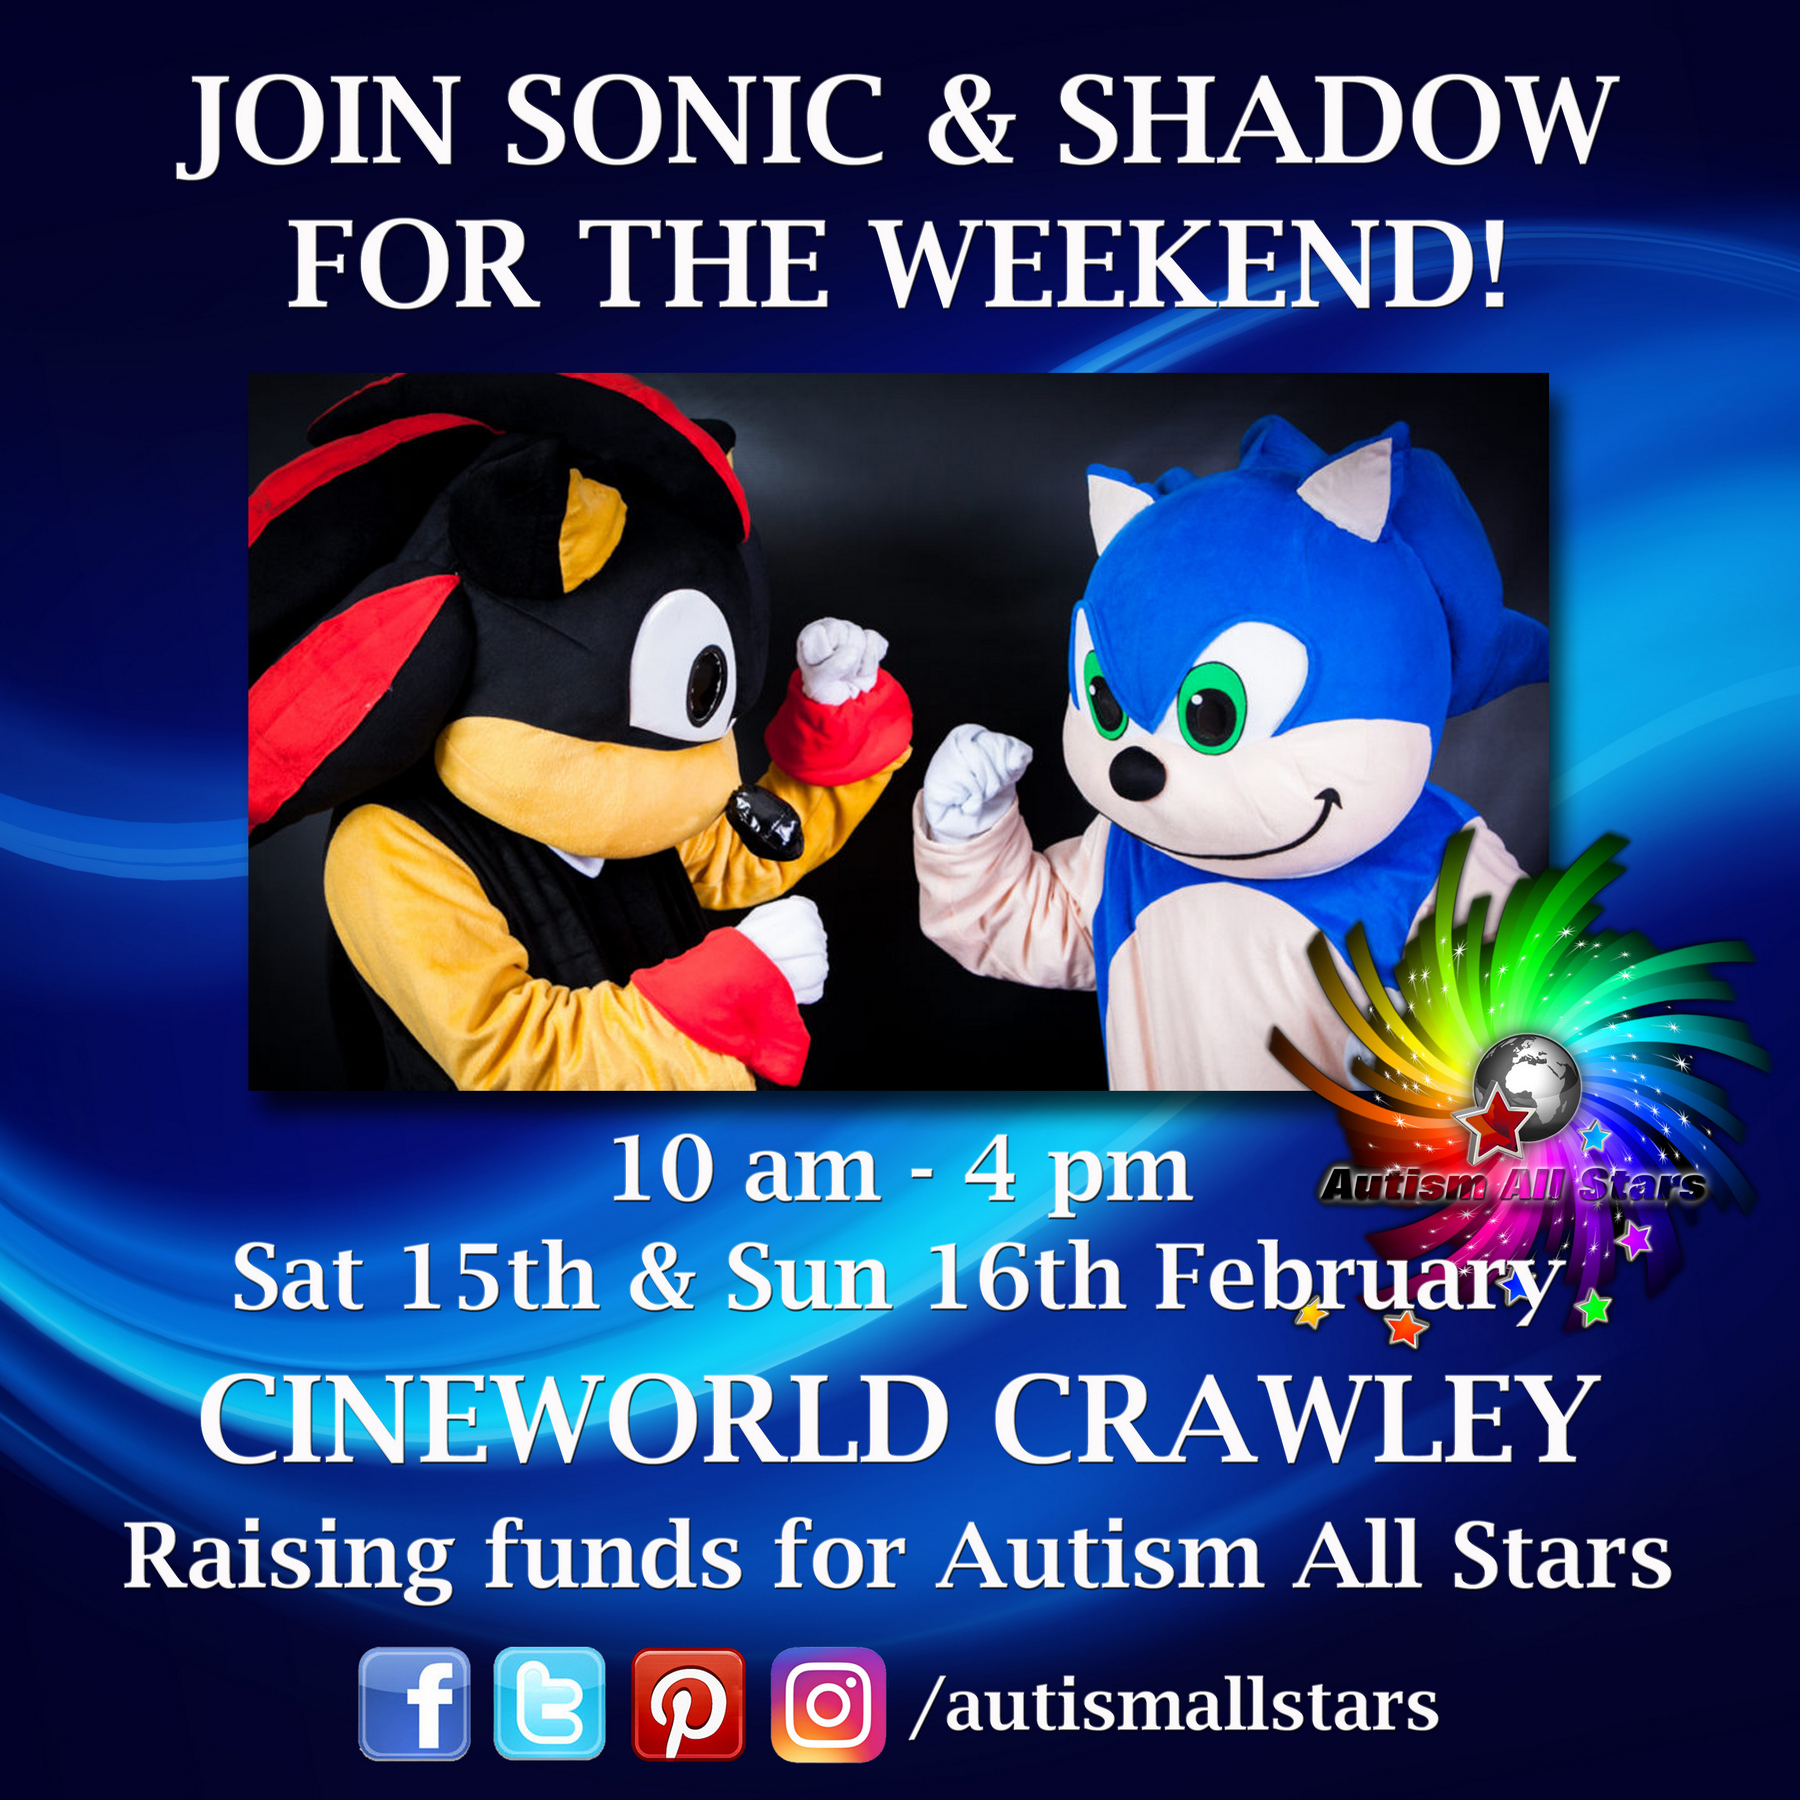 Aspergers, autism, Autism All Stars, autism acceptance, characters, charity, Cineworld, cosplay, diversity, events, family days out, autism friendly, Sussex, Crawley, West Sussex, Sonic the Hedgehog,